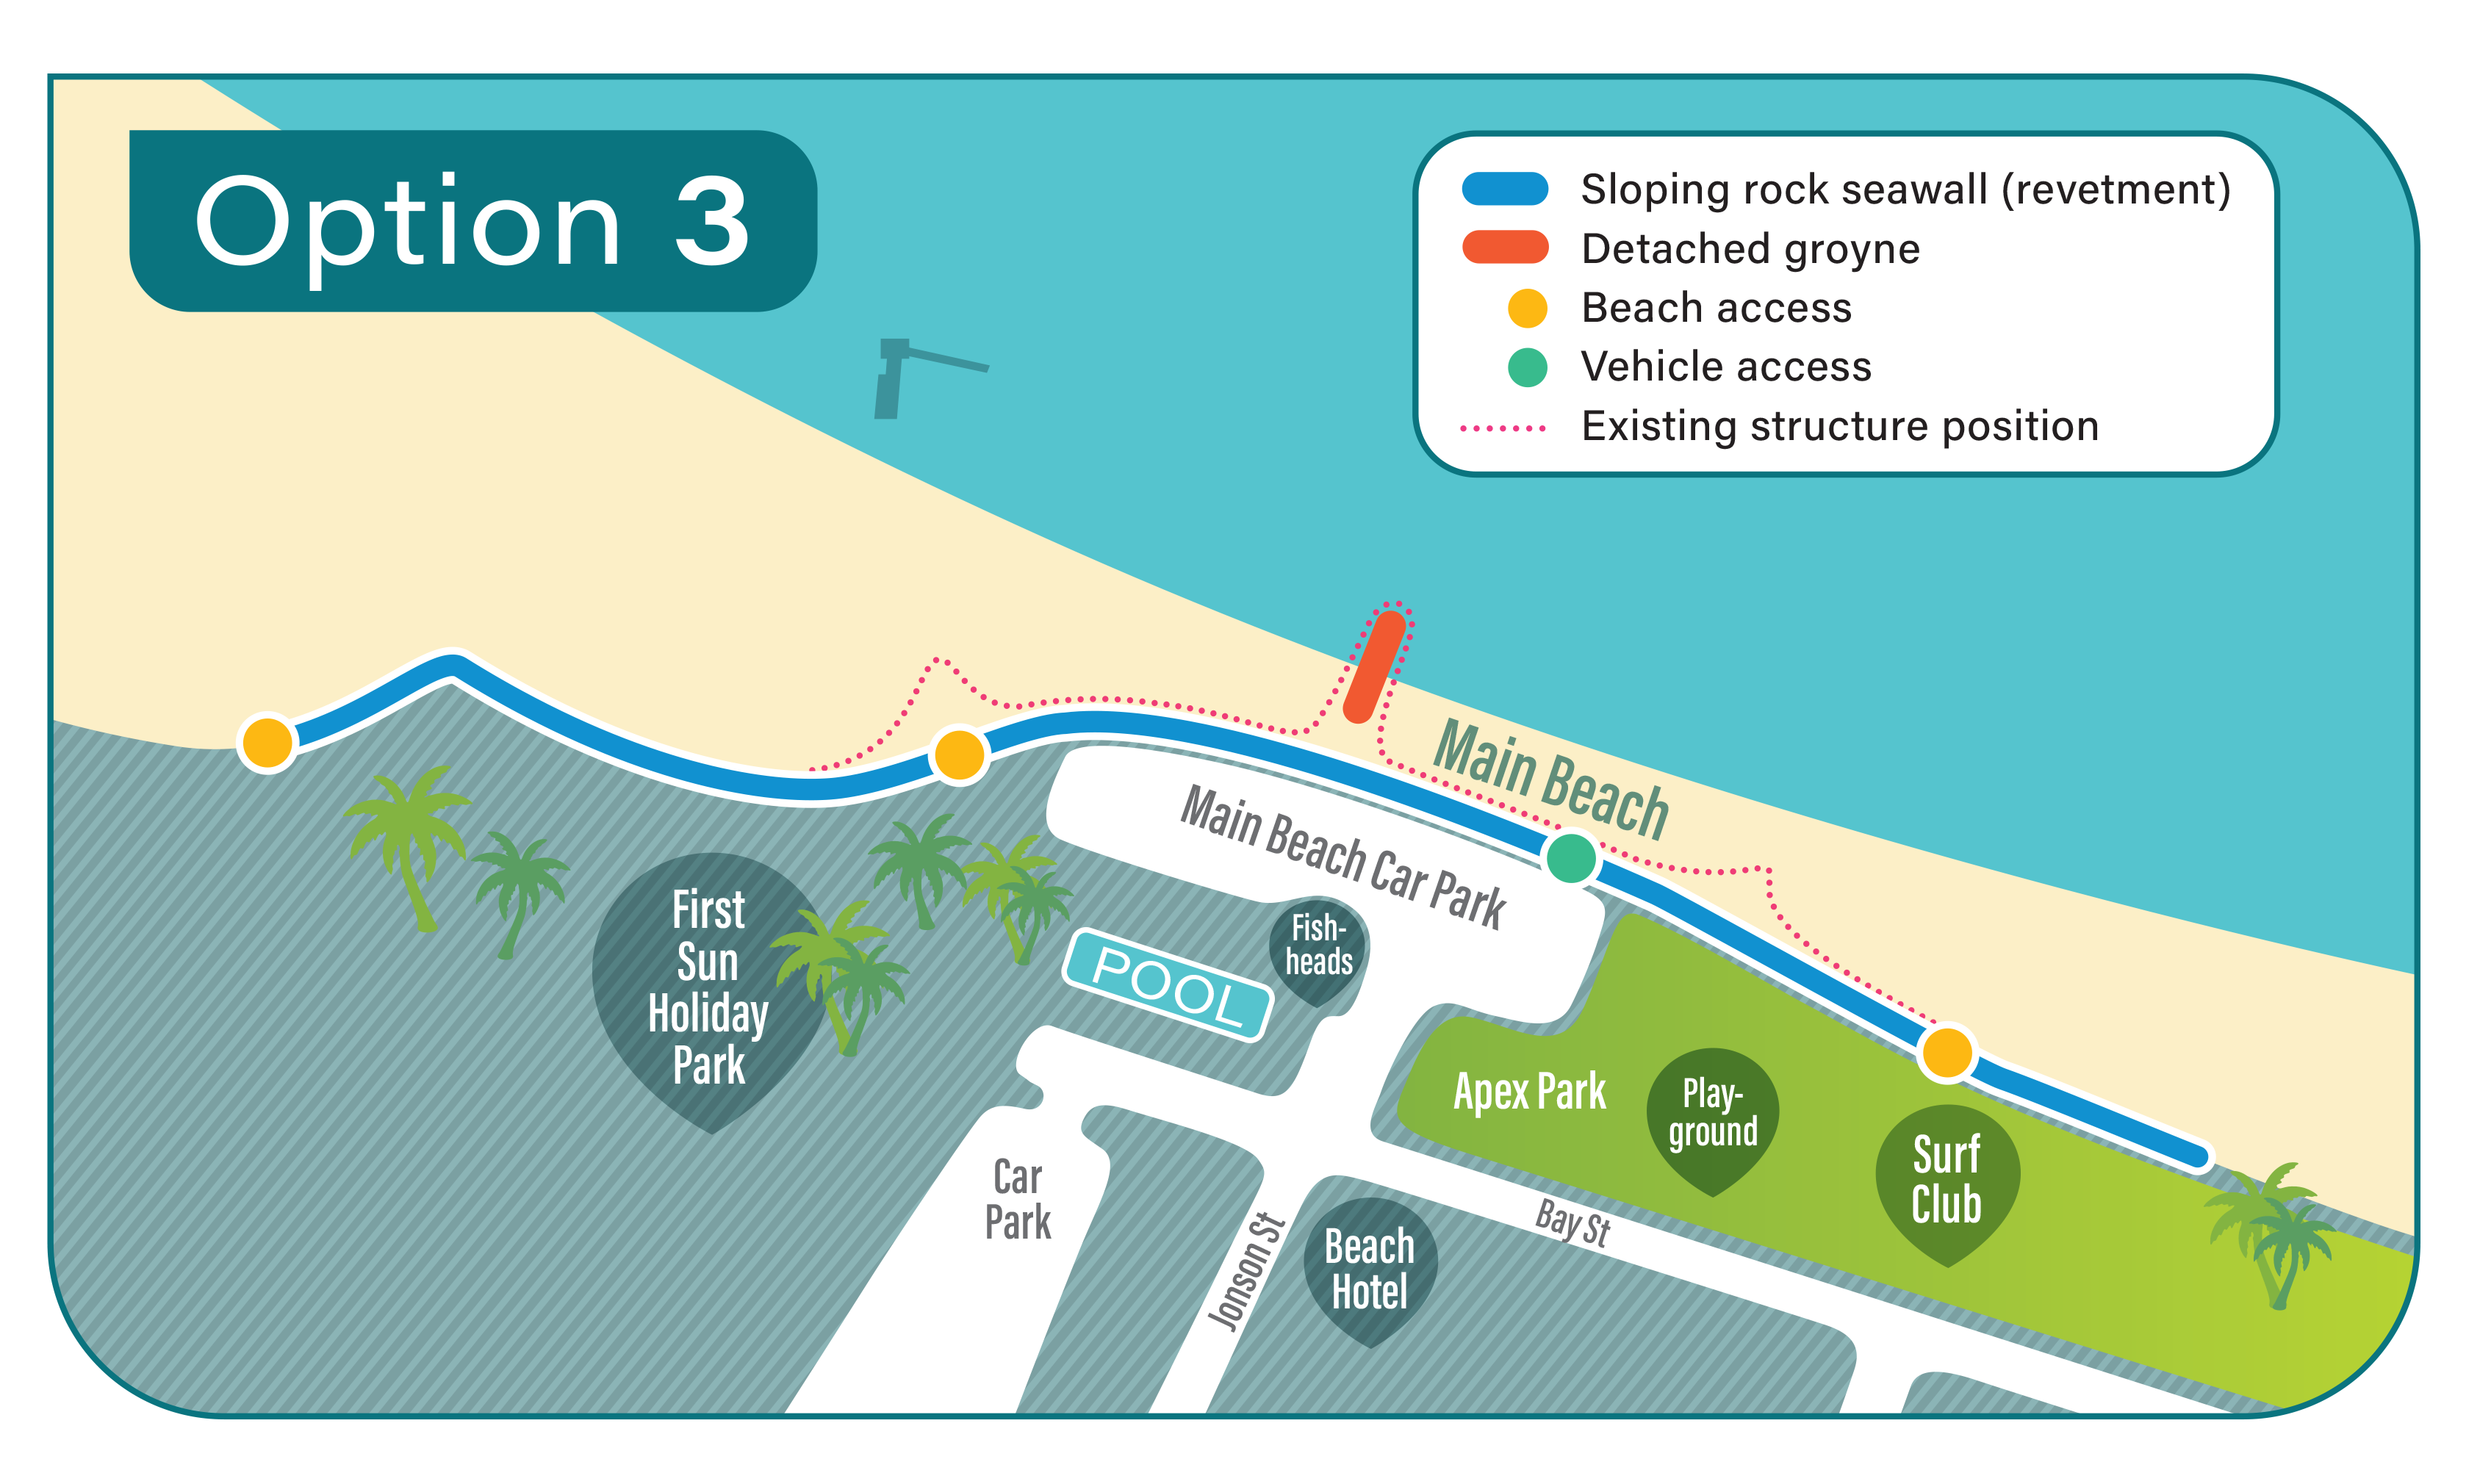 • Option 3 includes sloping rock seawall (revetment), detached groyne, beach access, vehicle access, existing structure position.